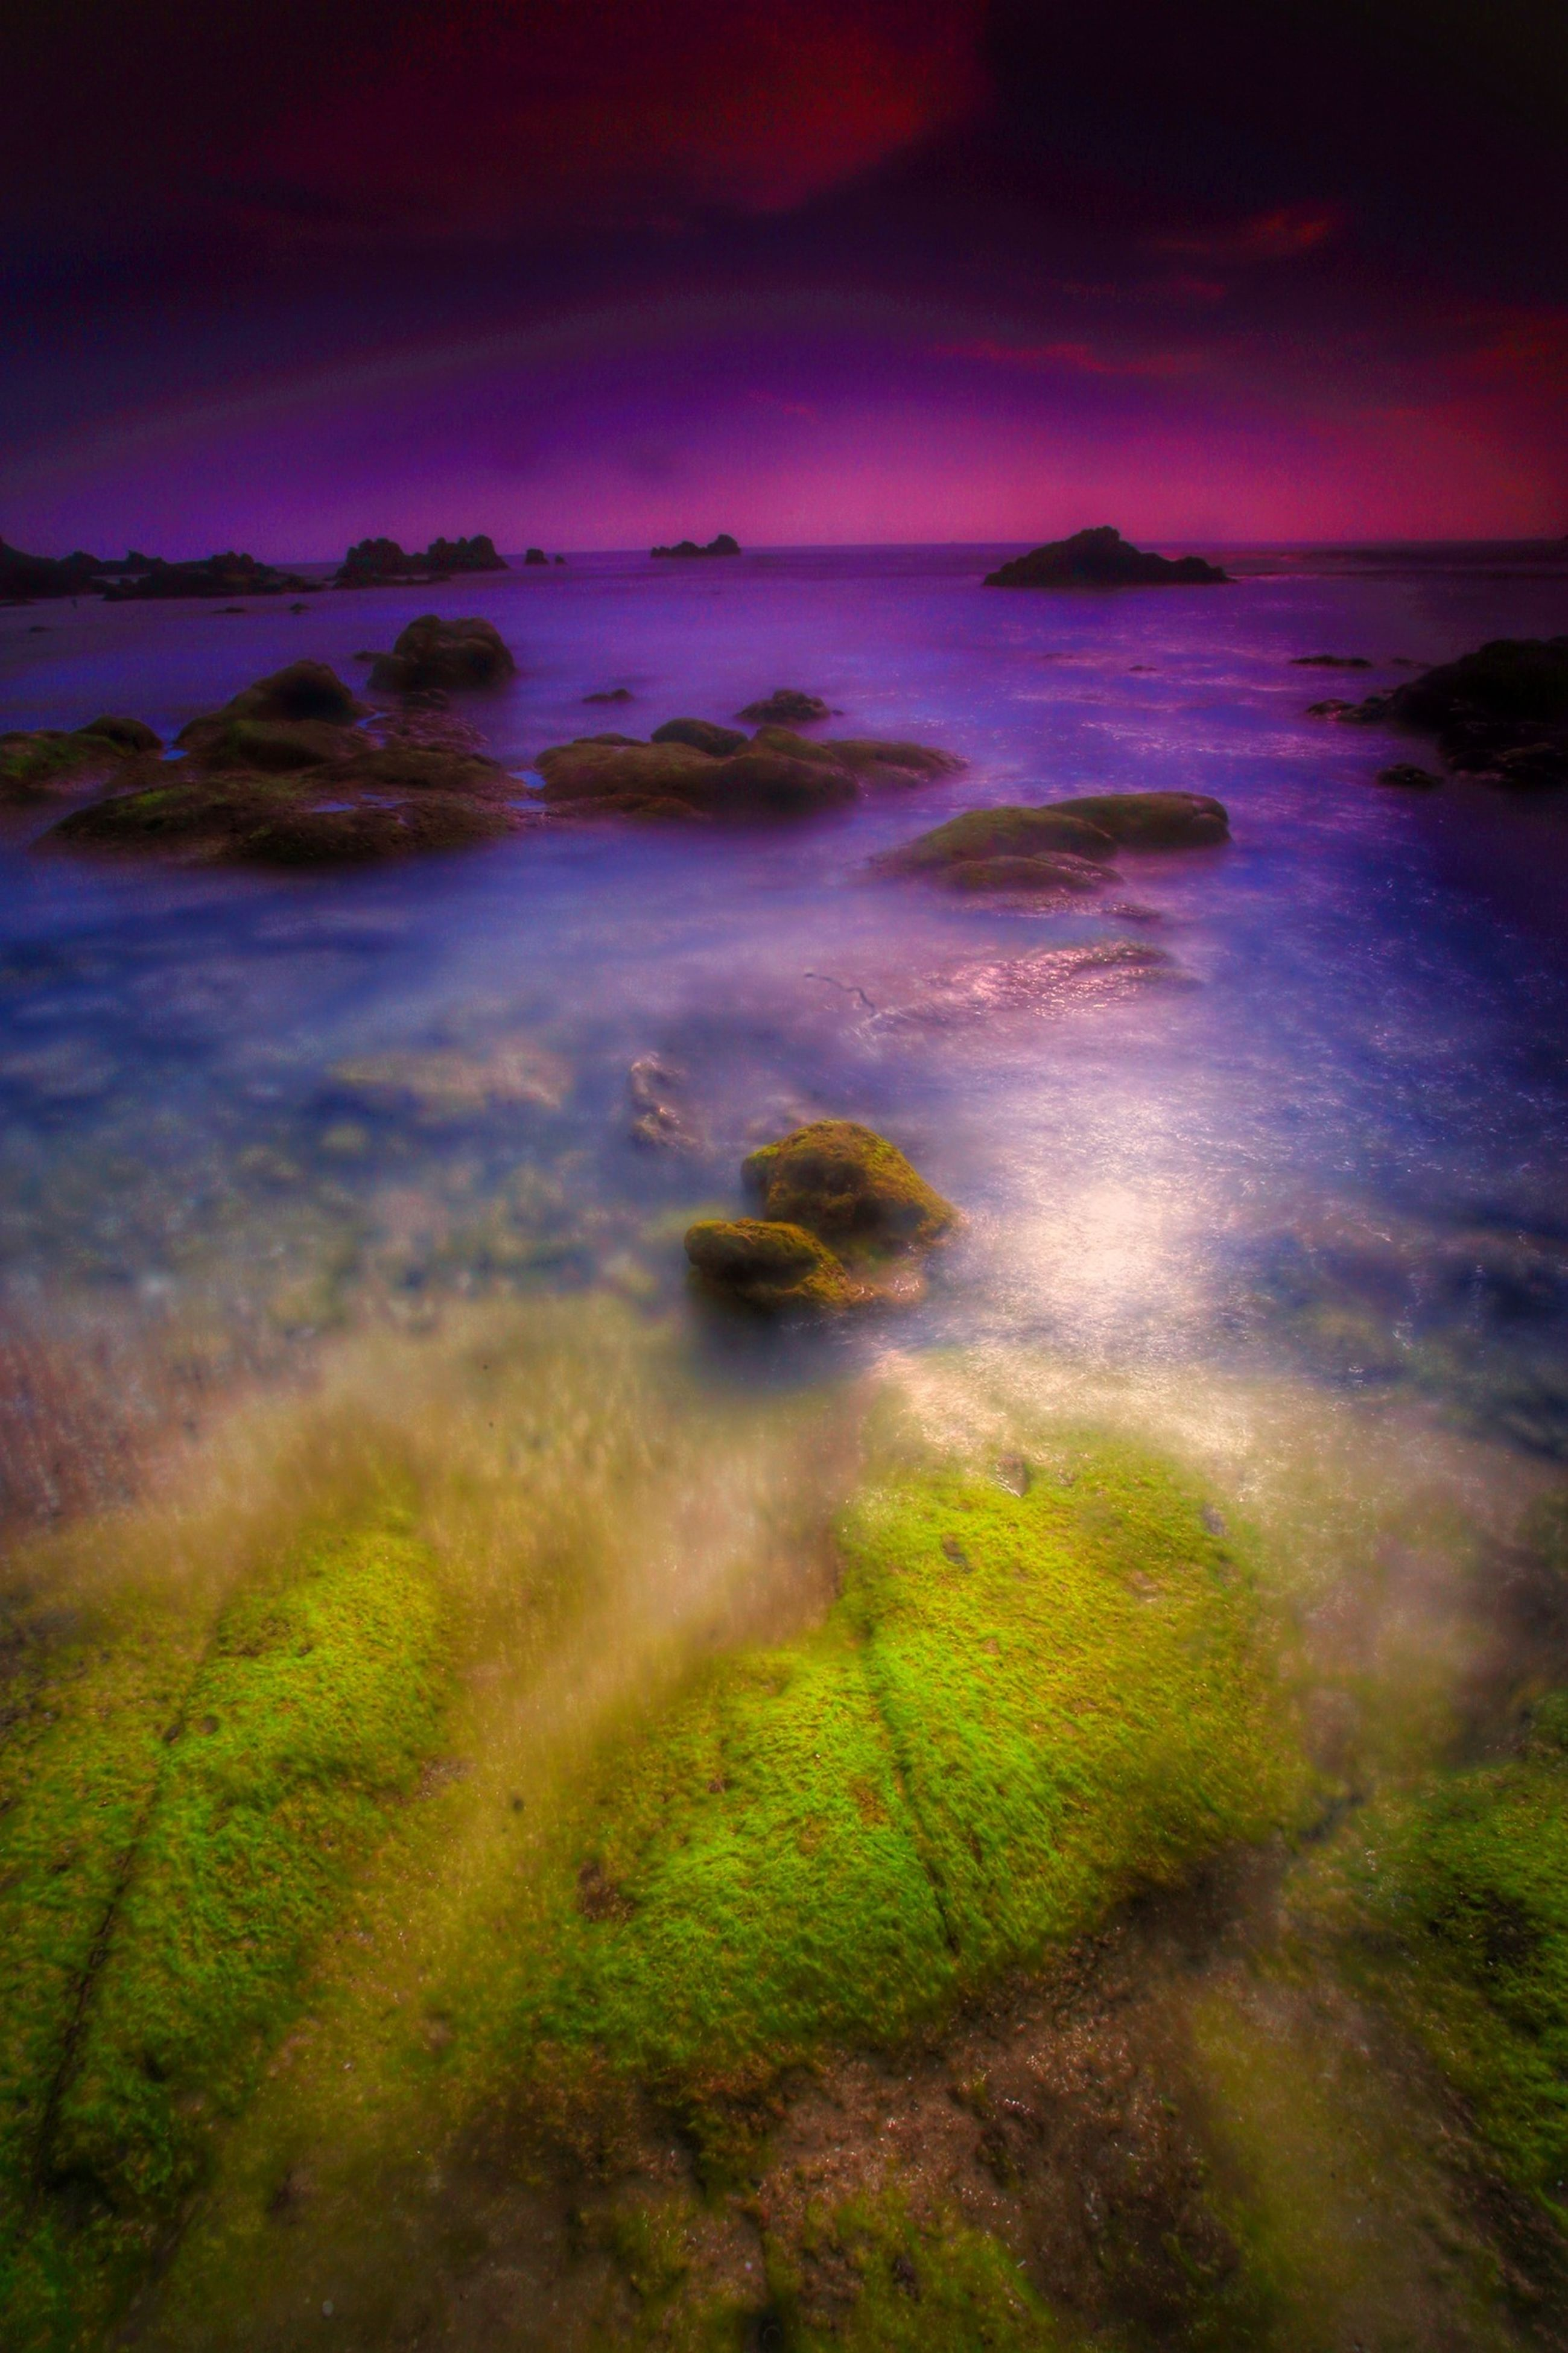 tranquil scene, scenics, water, tranquility, sky, beauty in nature, sea, sunset, nature, cloud - sky, idyllic, horizon over water, grass, dusk, beach, landscape, plant, outdoors, dramatic sky, shore